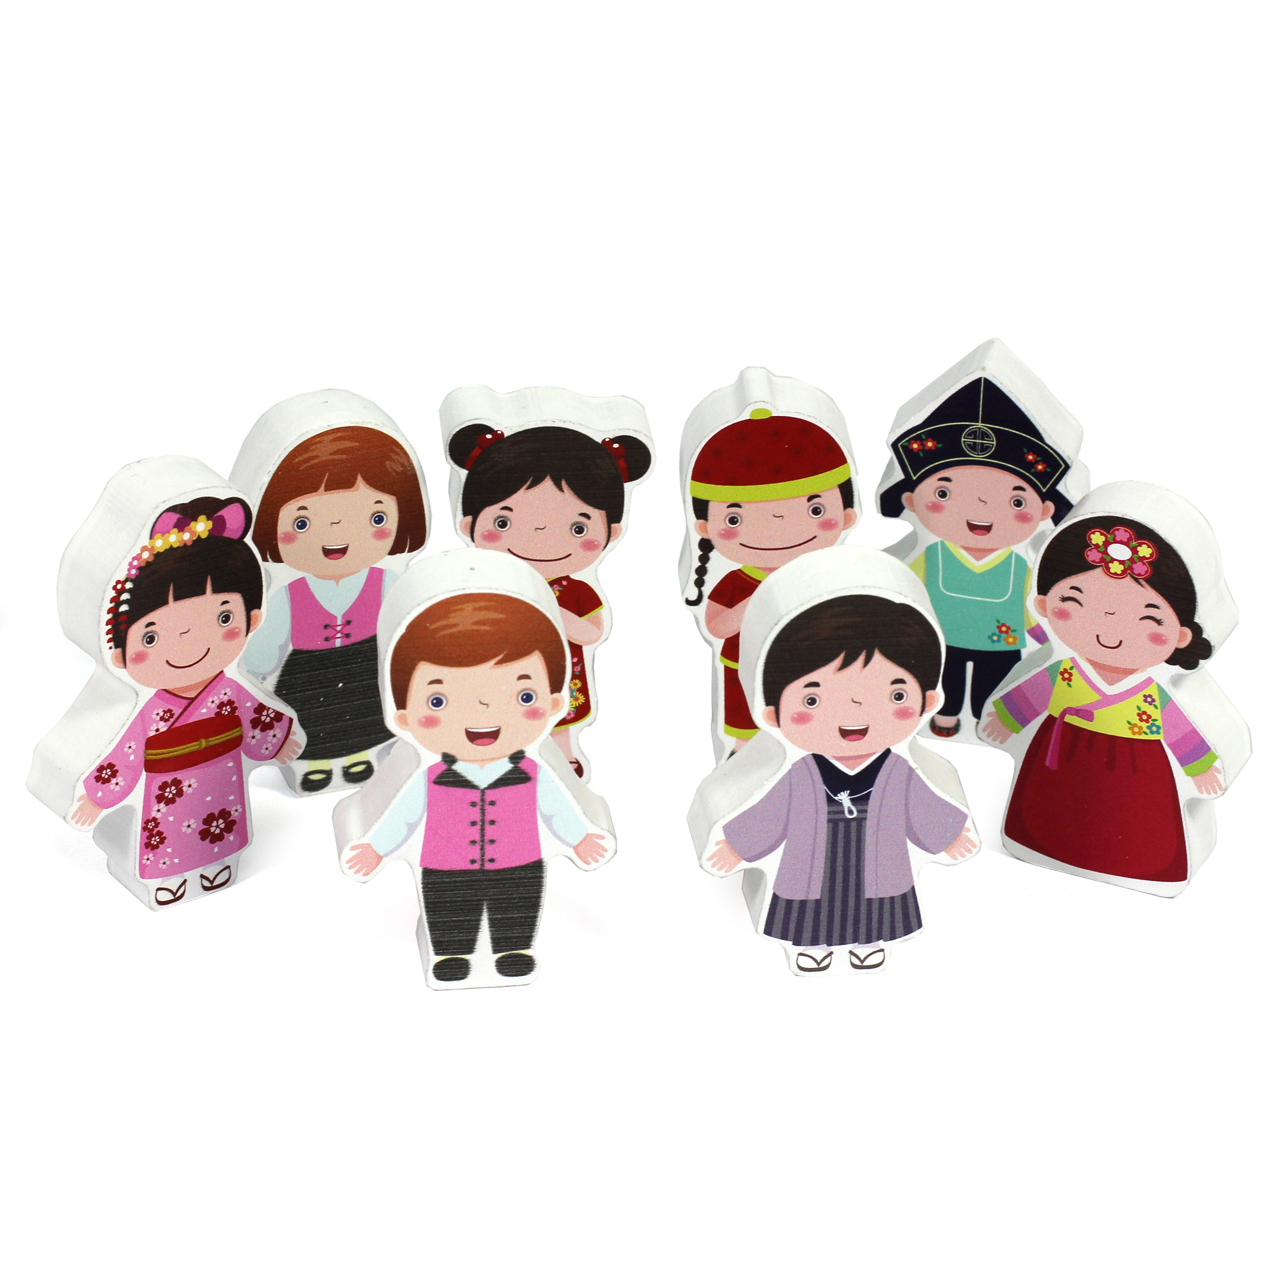 8Pc 15mm Thick Multicultural Character Group